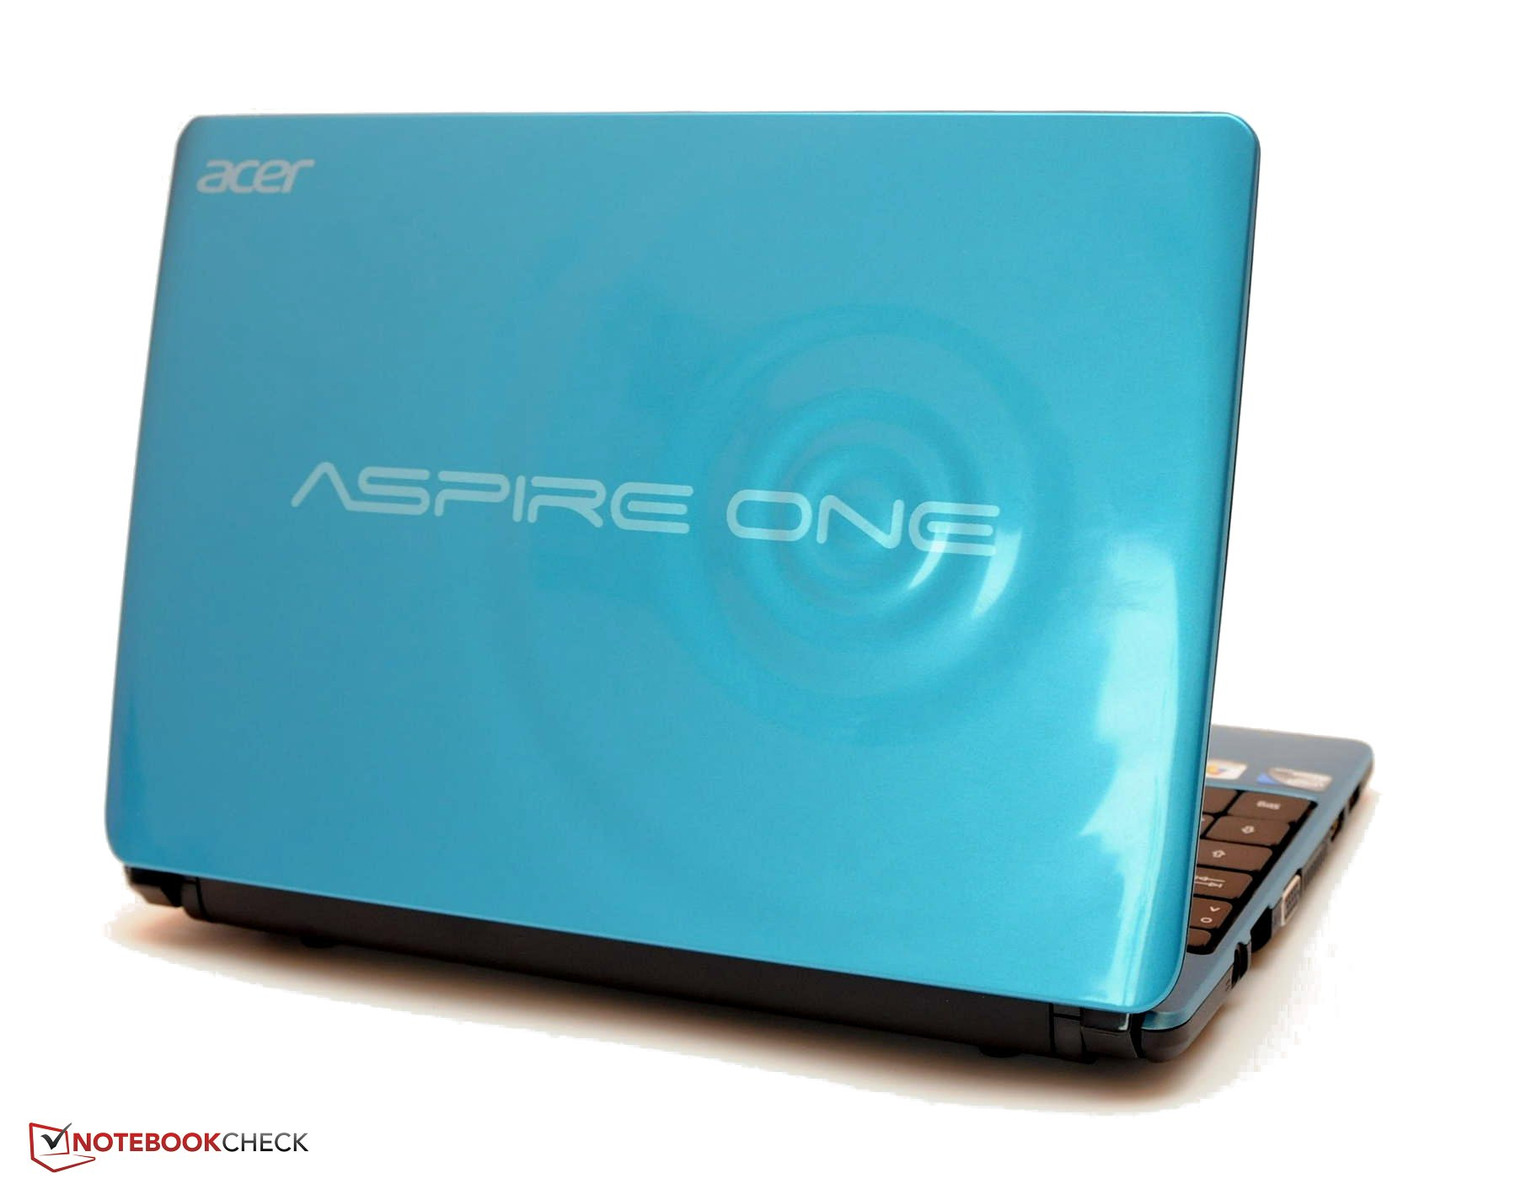 ACER ASPIRE ONE D270 VIDEO CARD WINDOWS 8 DRIVERS DOWNLOAD